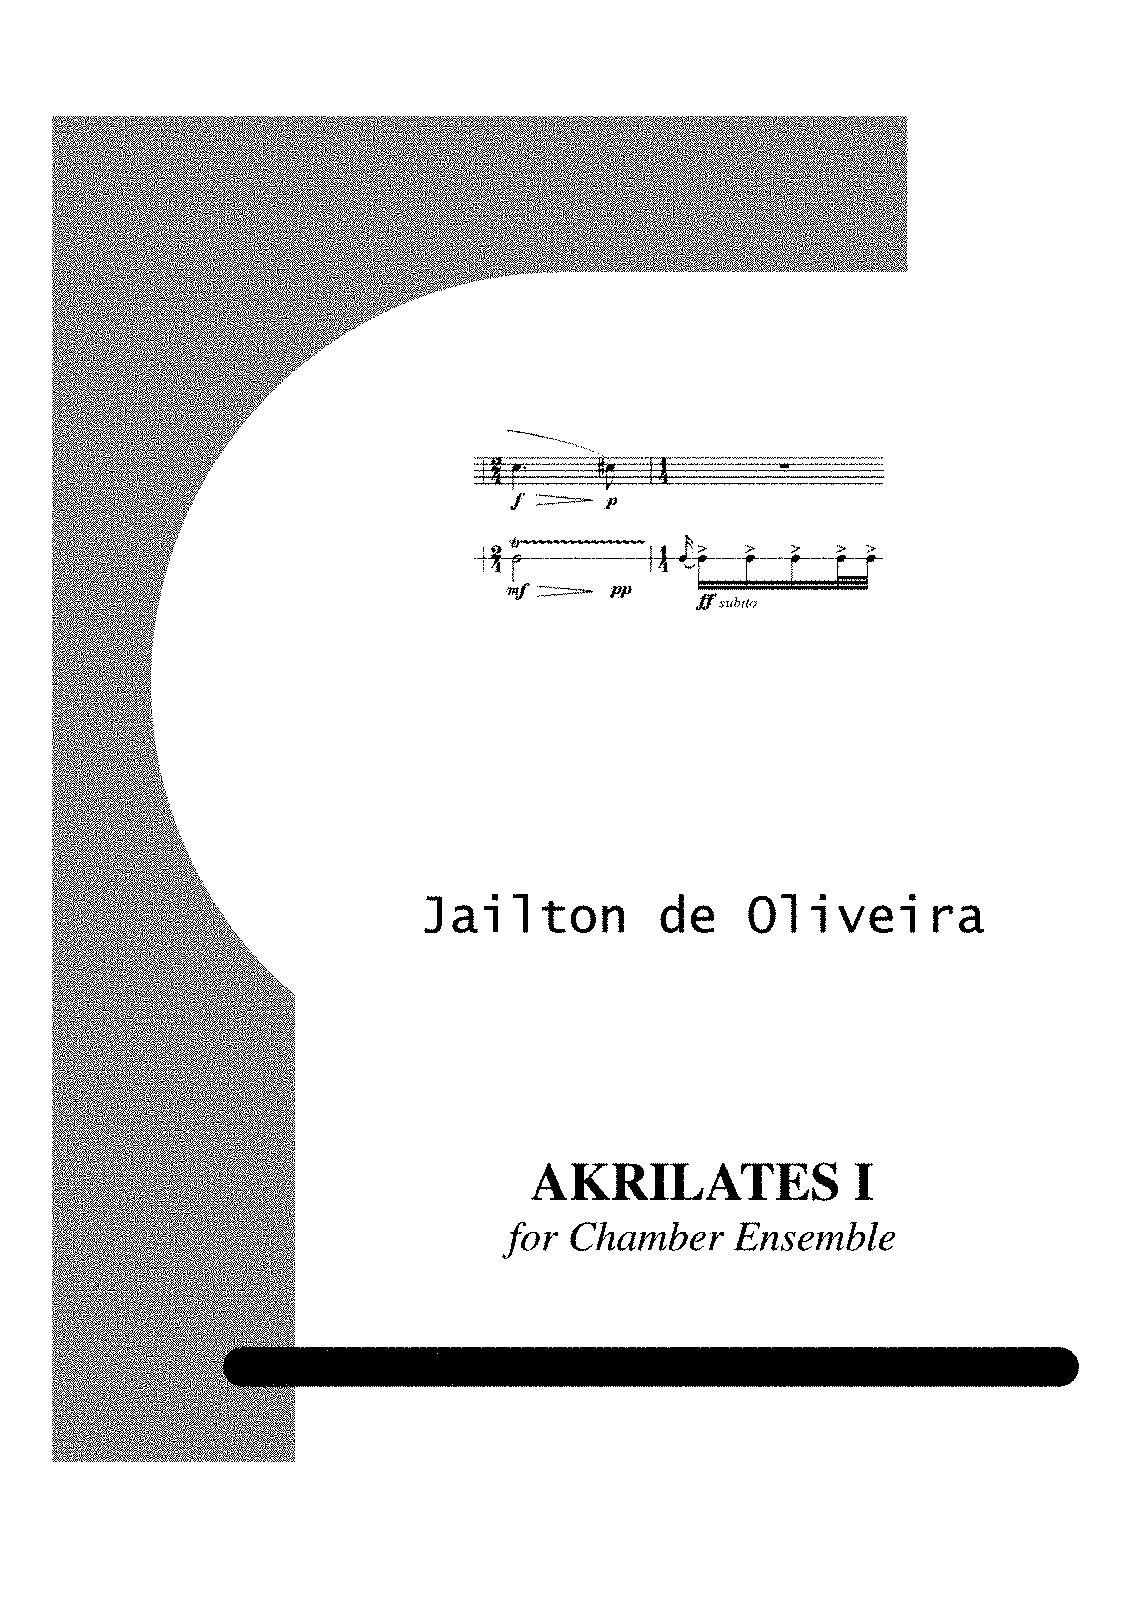 PMLP345407-akrilates1 for chamber ensemble score.pdf